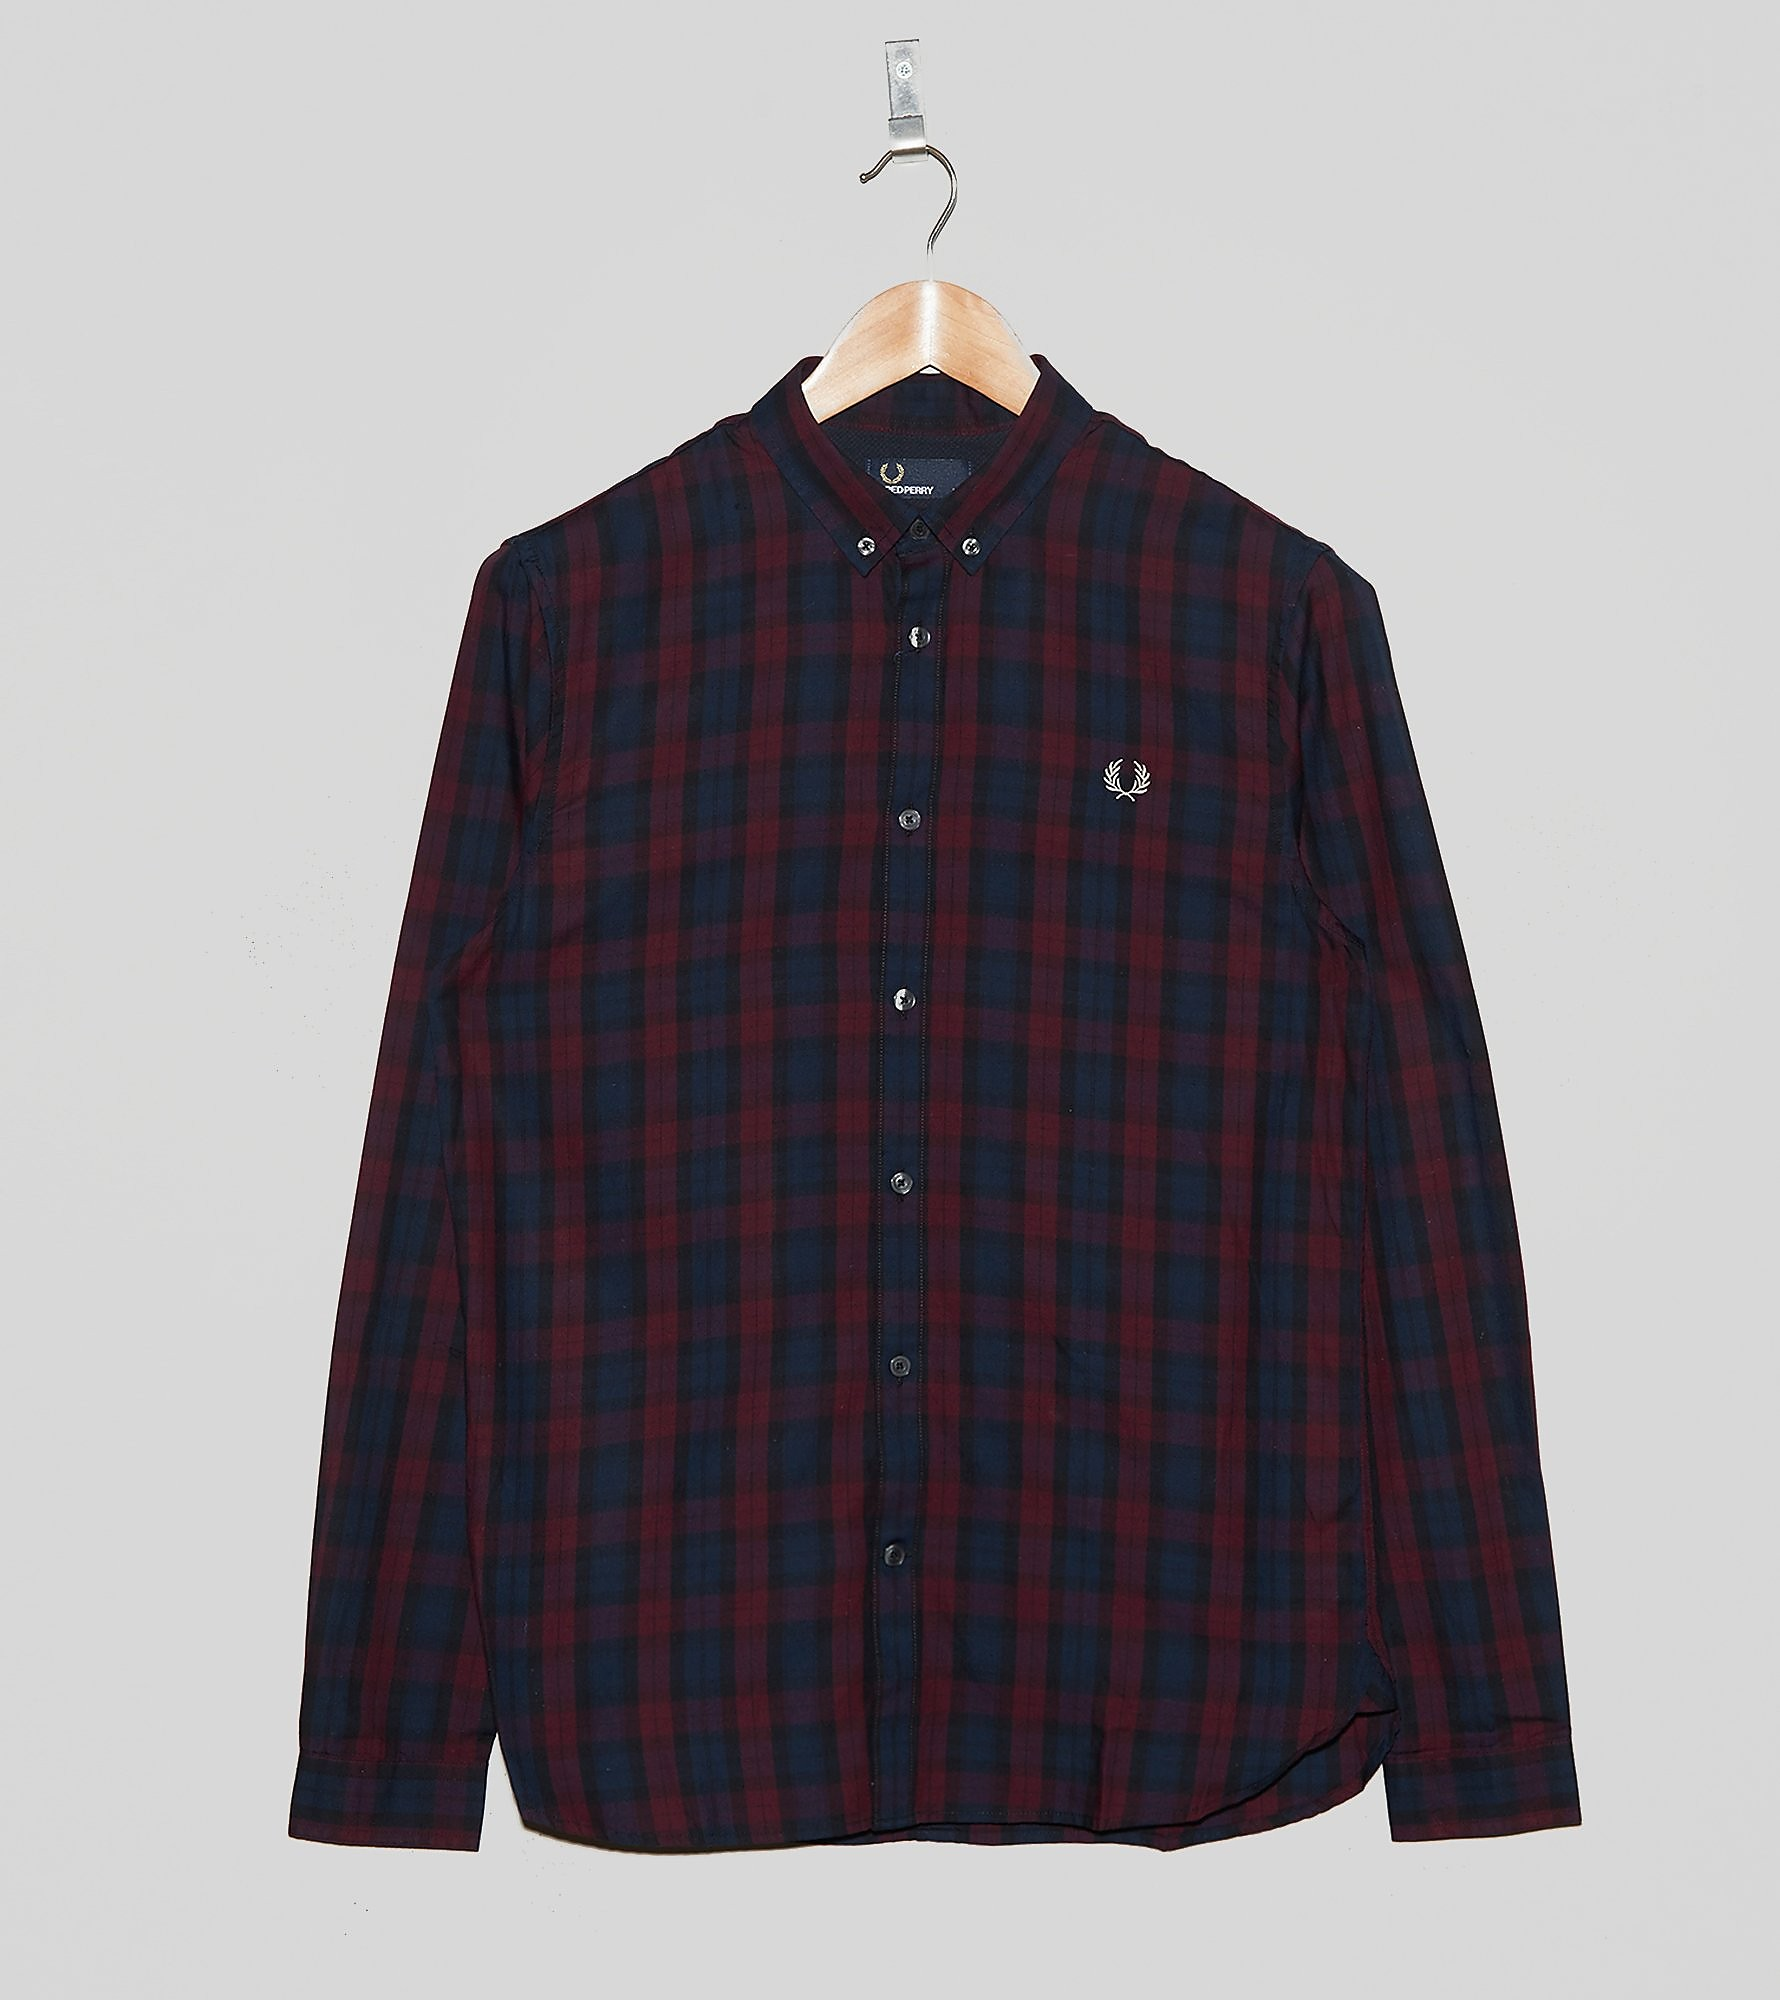 Fred Perry Winter Tartan Plaid Shirt